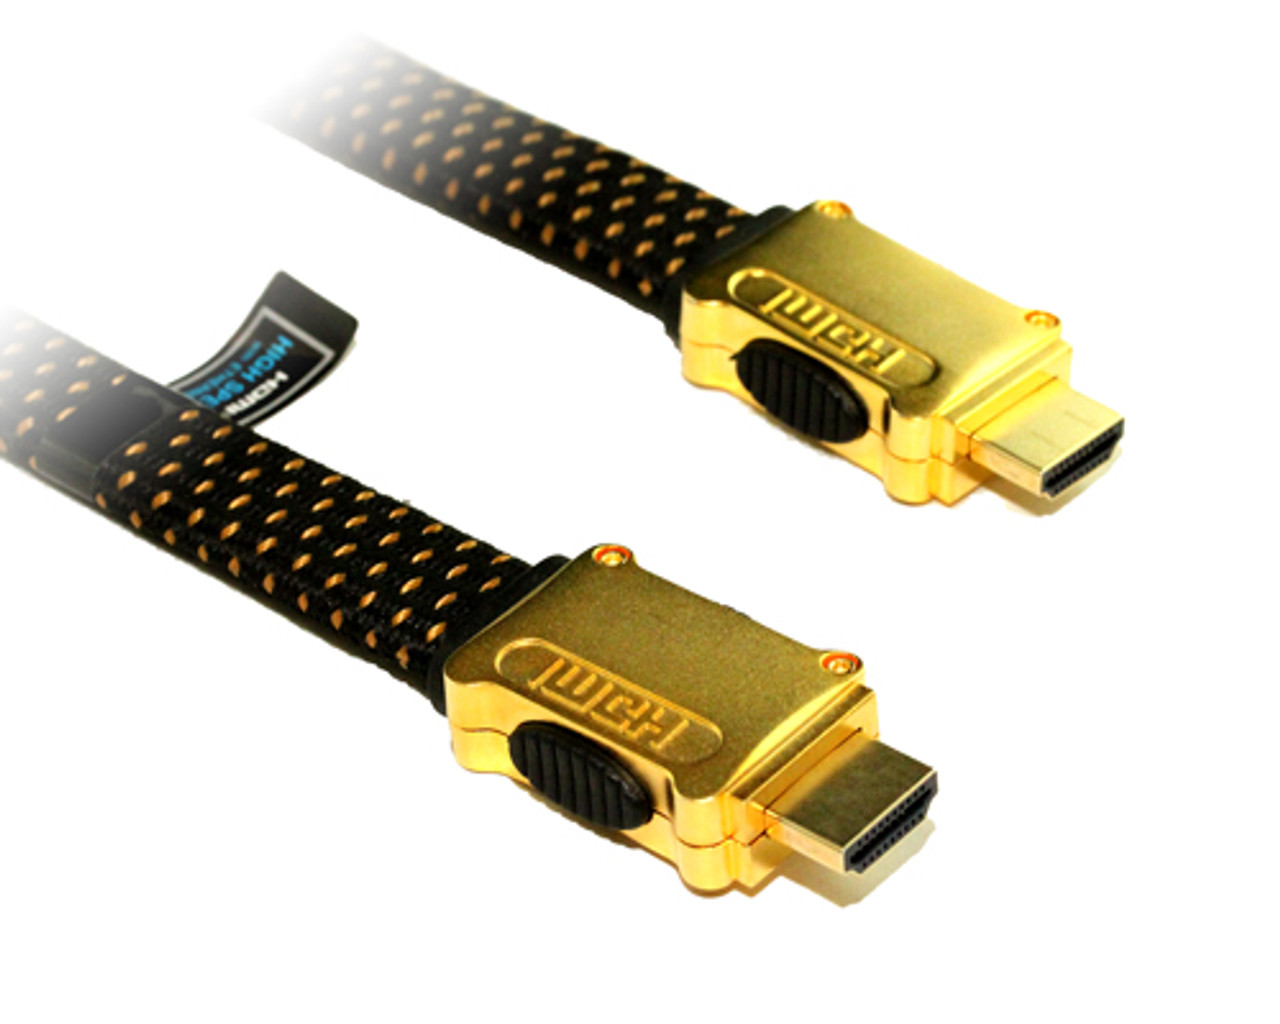 Product image for 2M HDMI Flat Cable High Speed With Ethernet | CX Computer Superstore